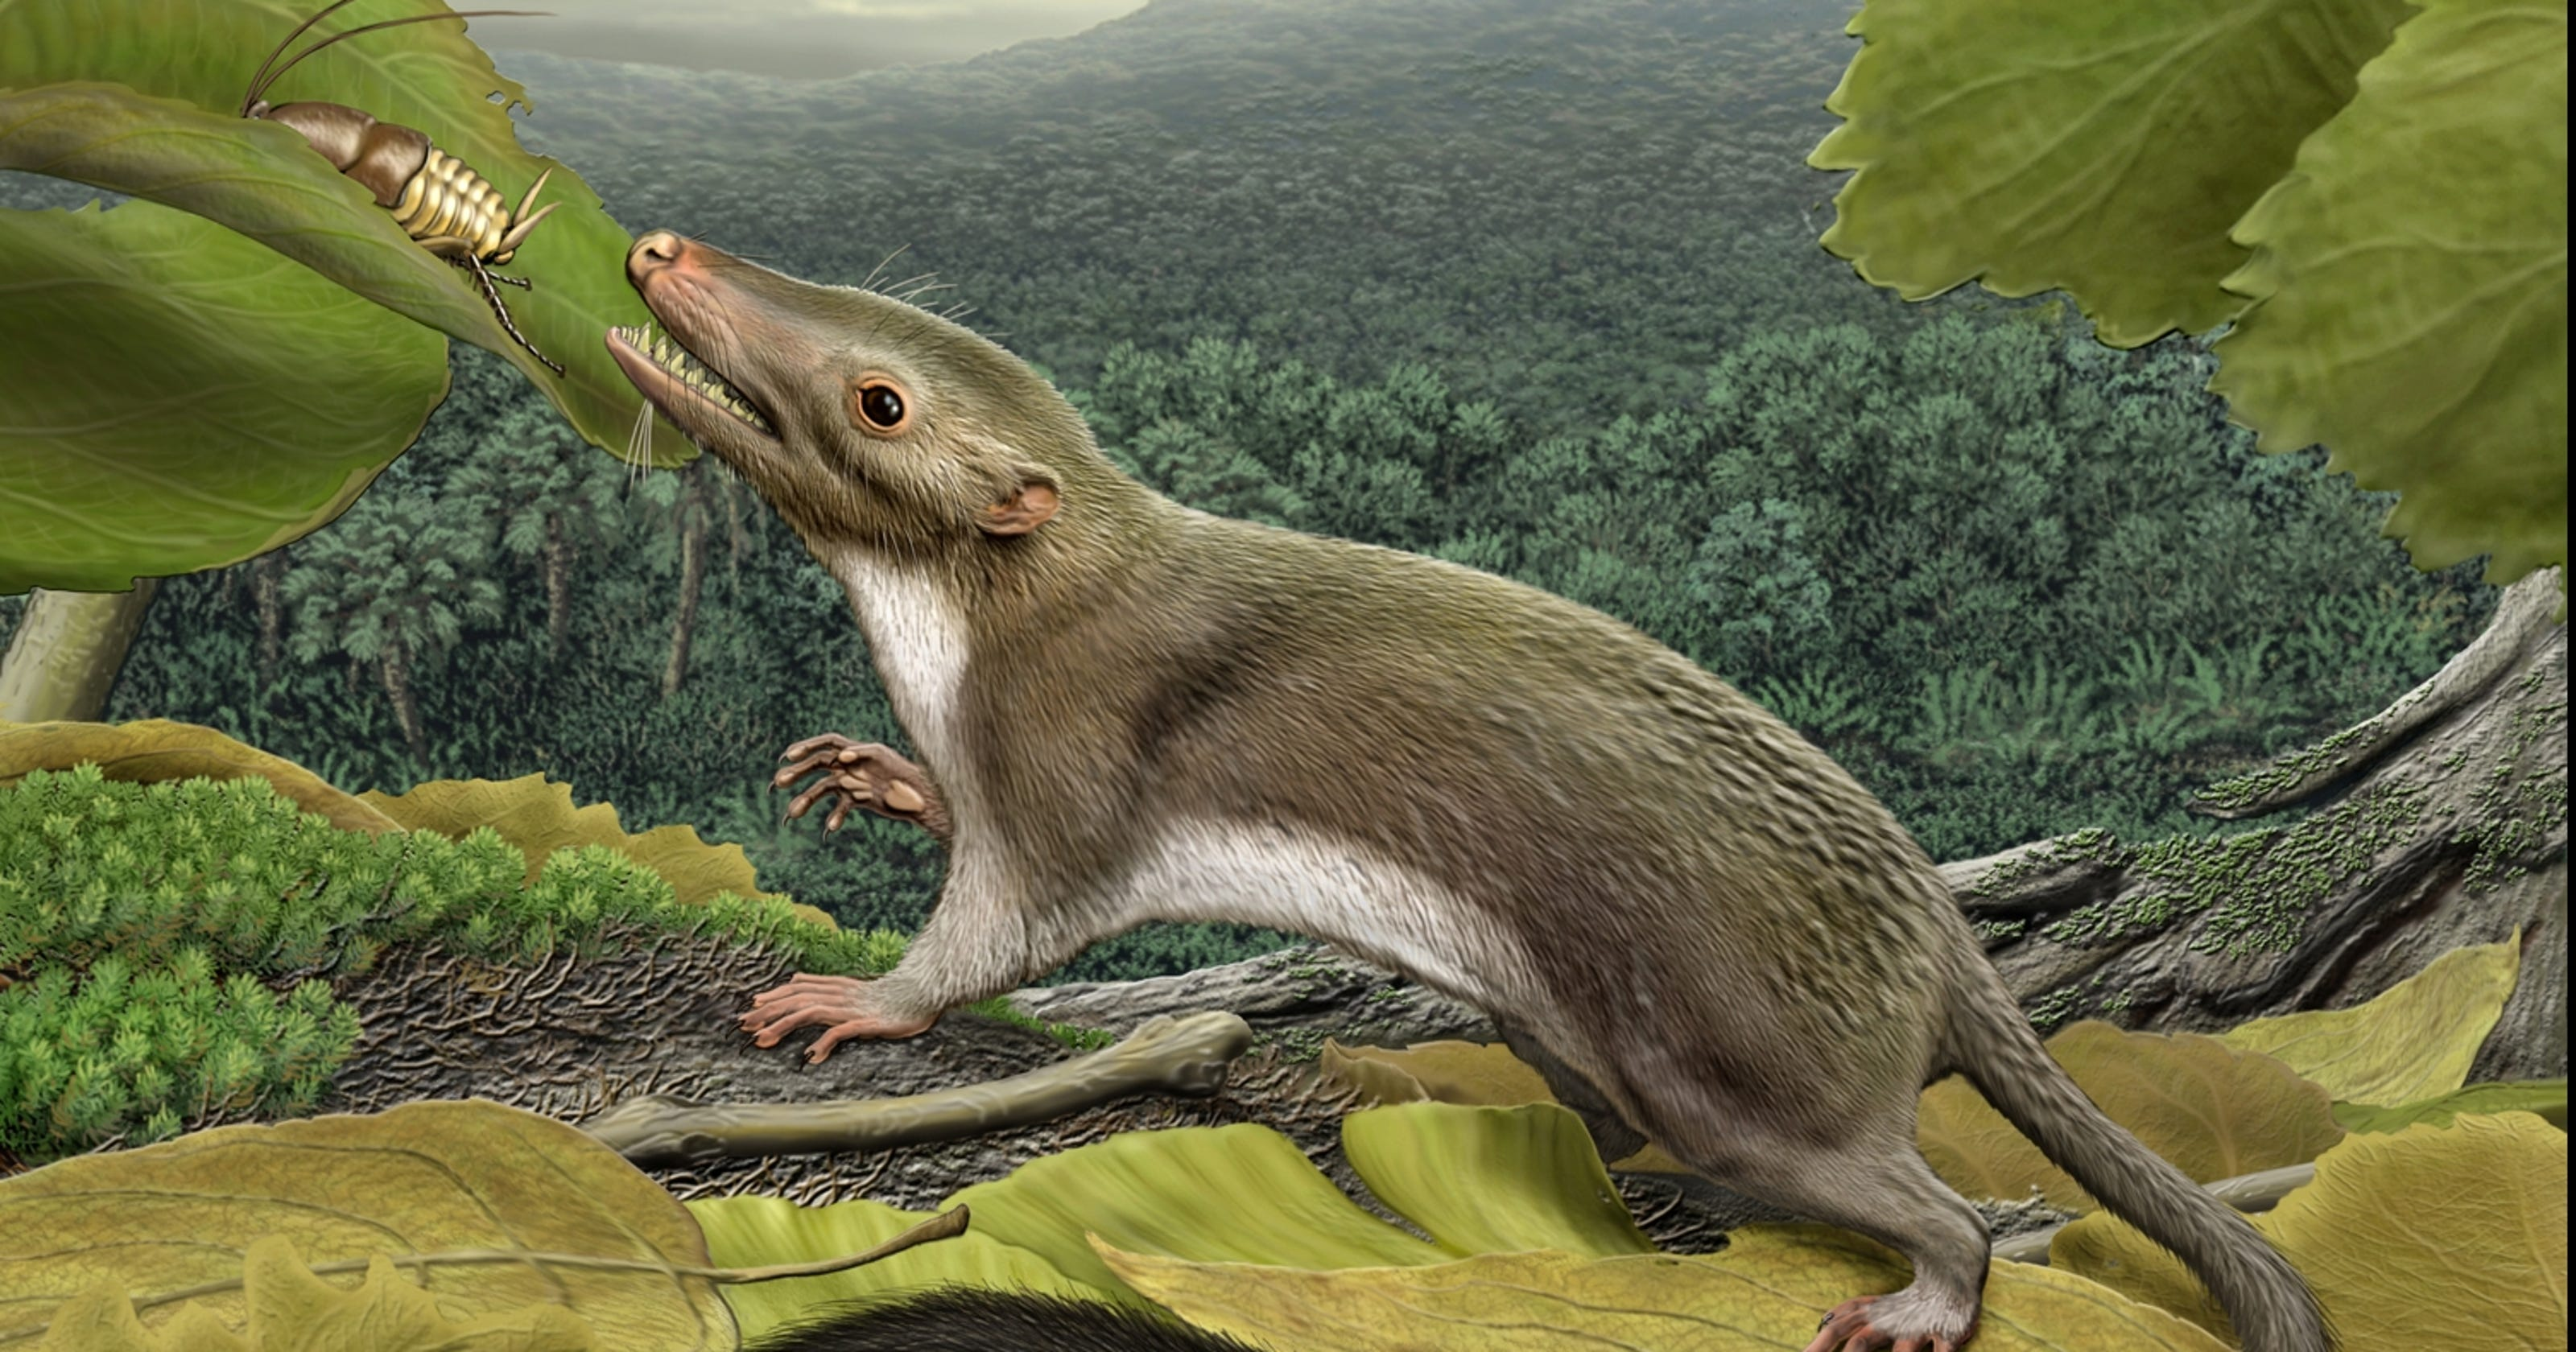 Mammal ancestry expanded after dinosaurs died off